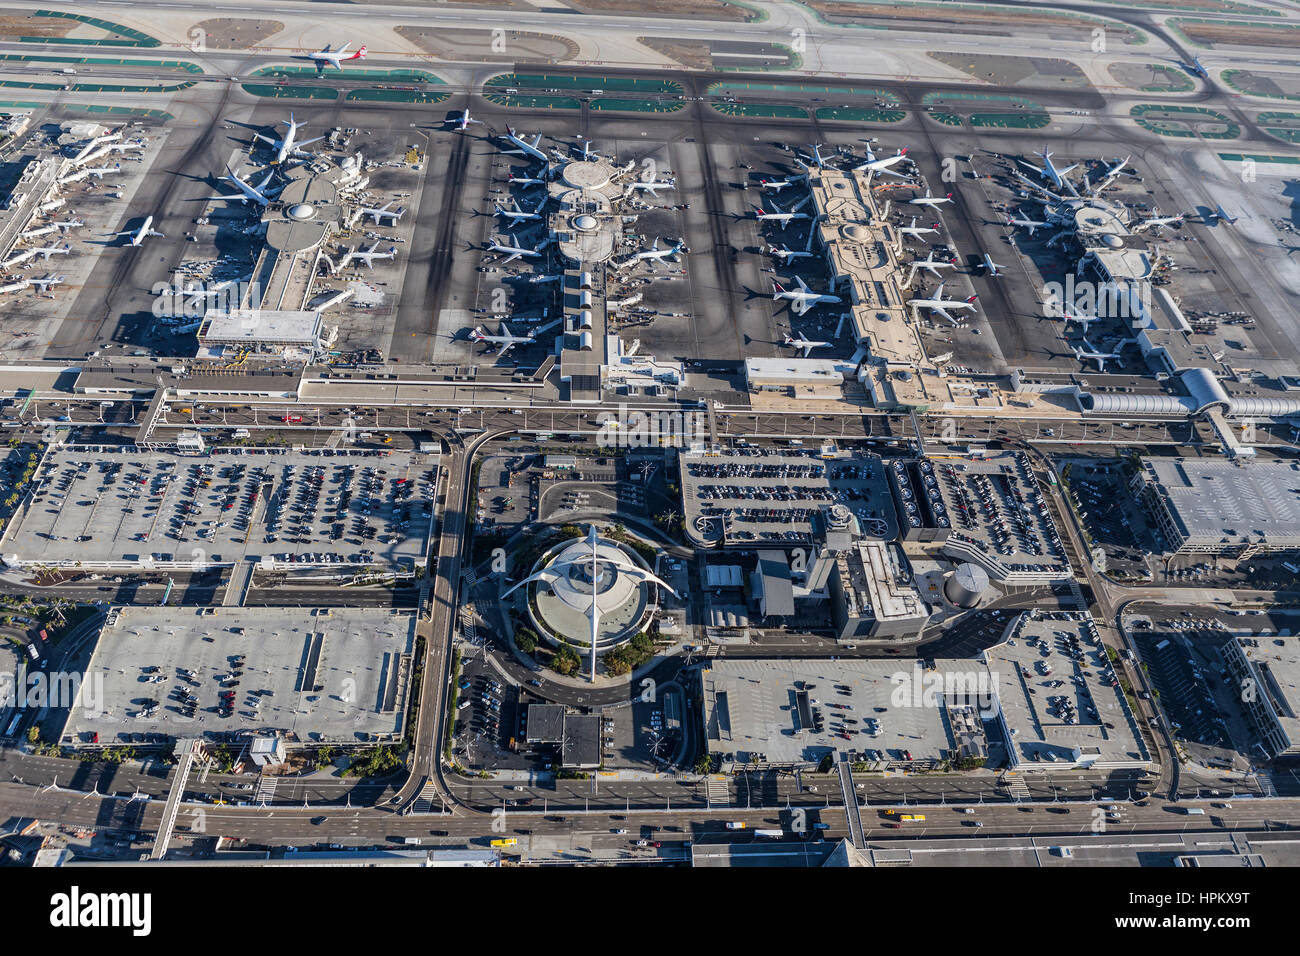 Los Angeles, California, USA - August 16, 2016:  Aerial view of terminals and parking garages at LAX. - Stock Image